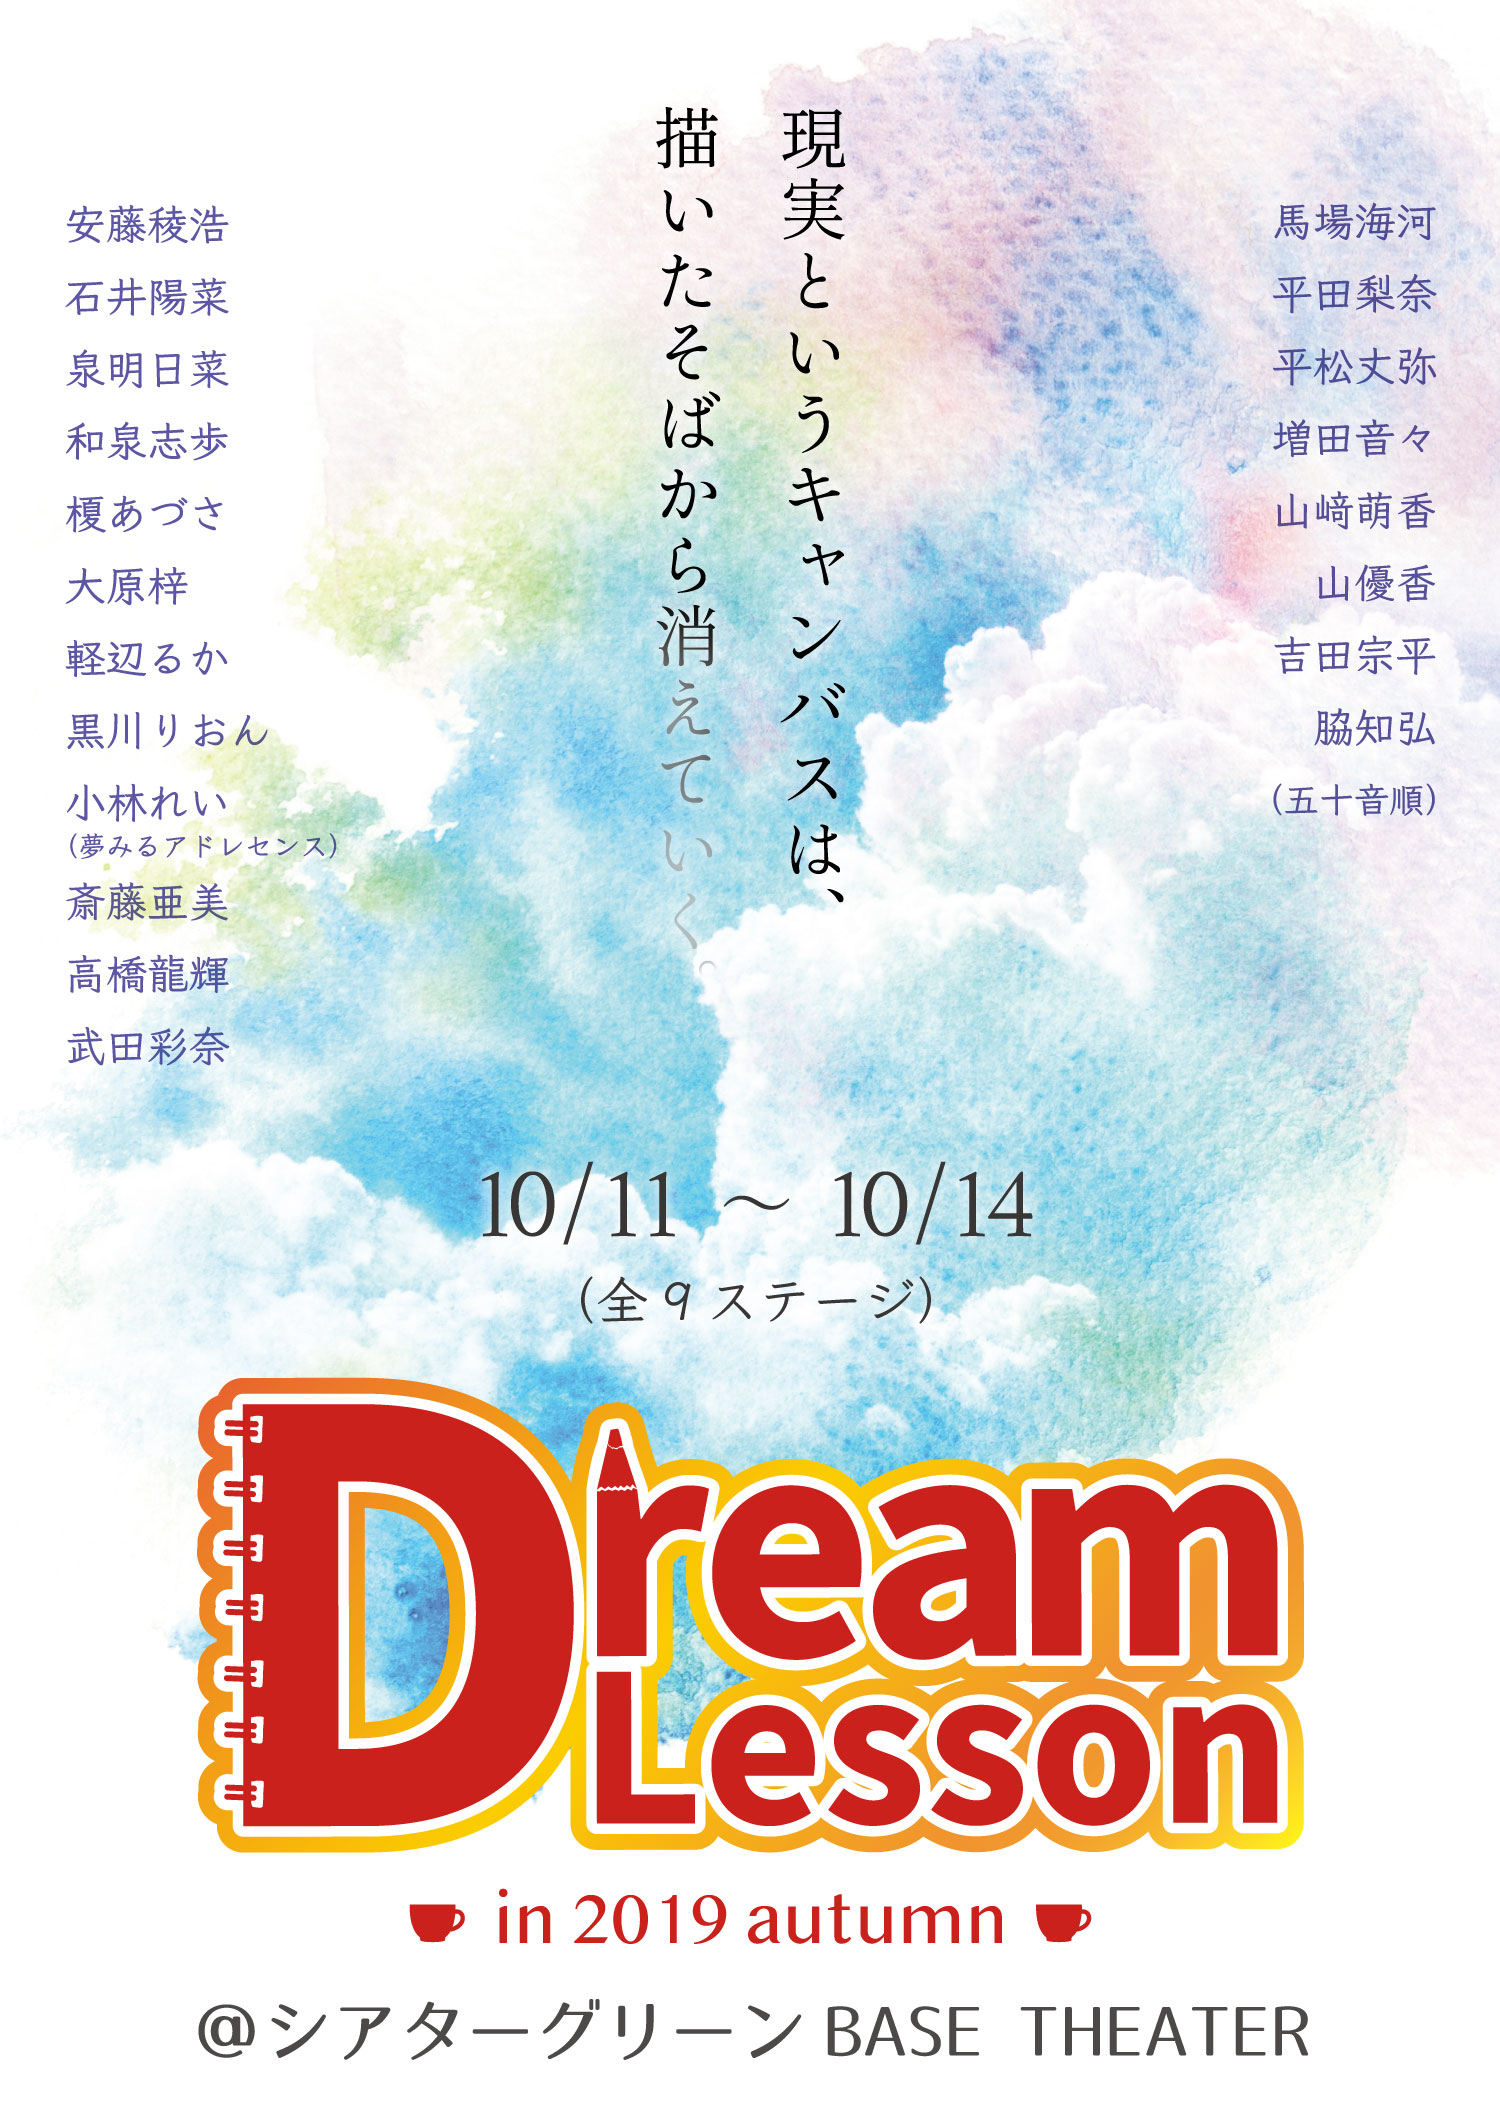 【10月11日 19時】公演 Dream Lesson in2019 autumn